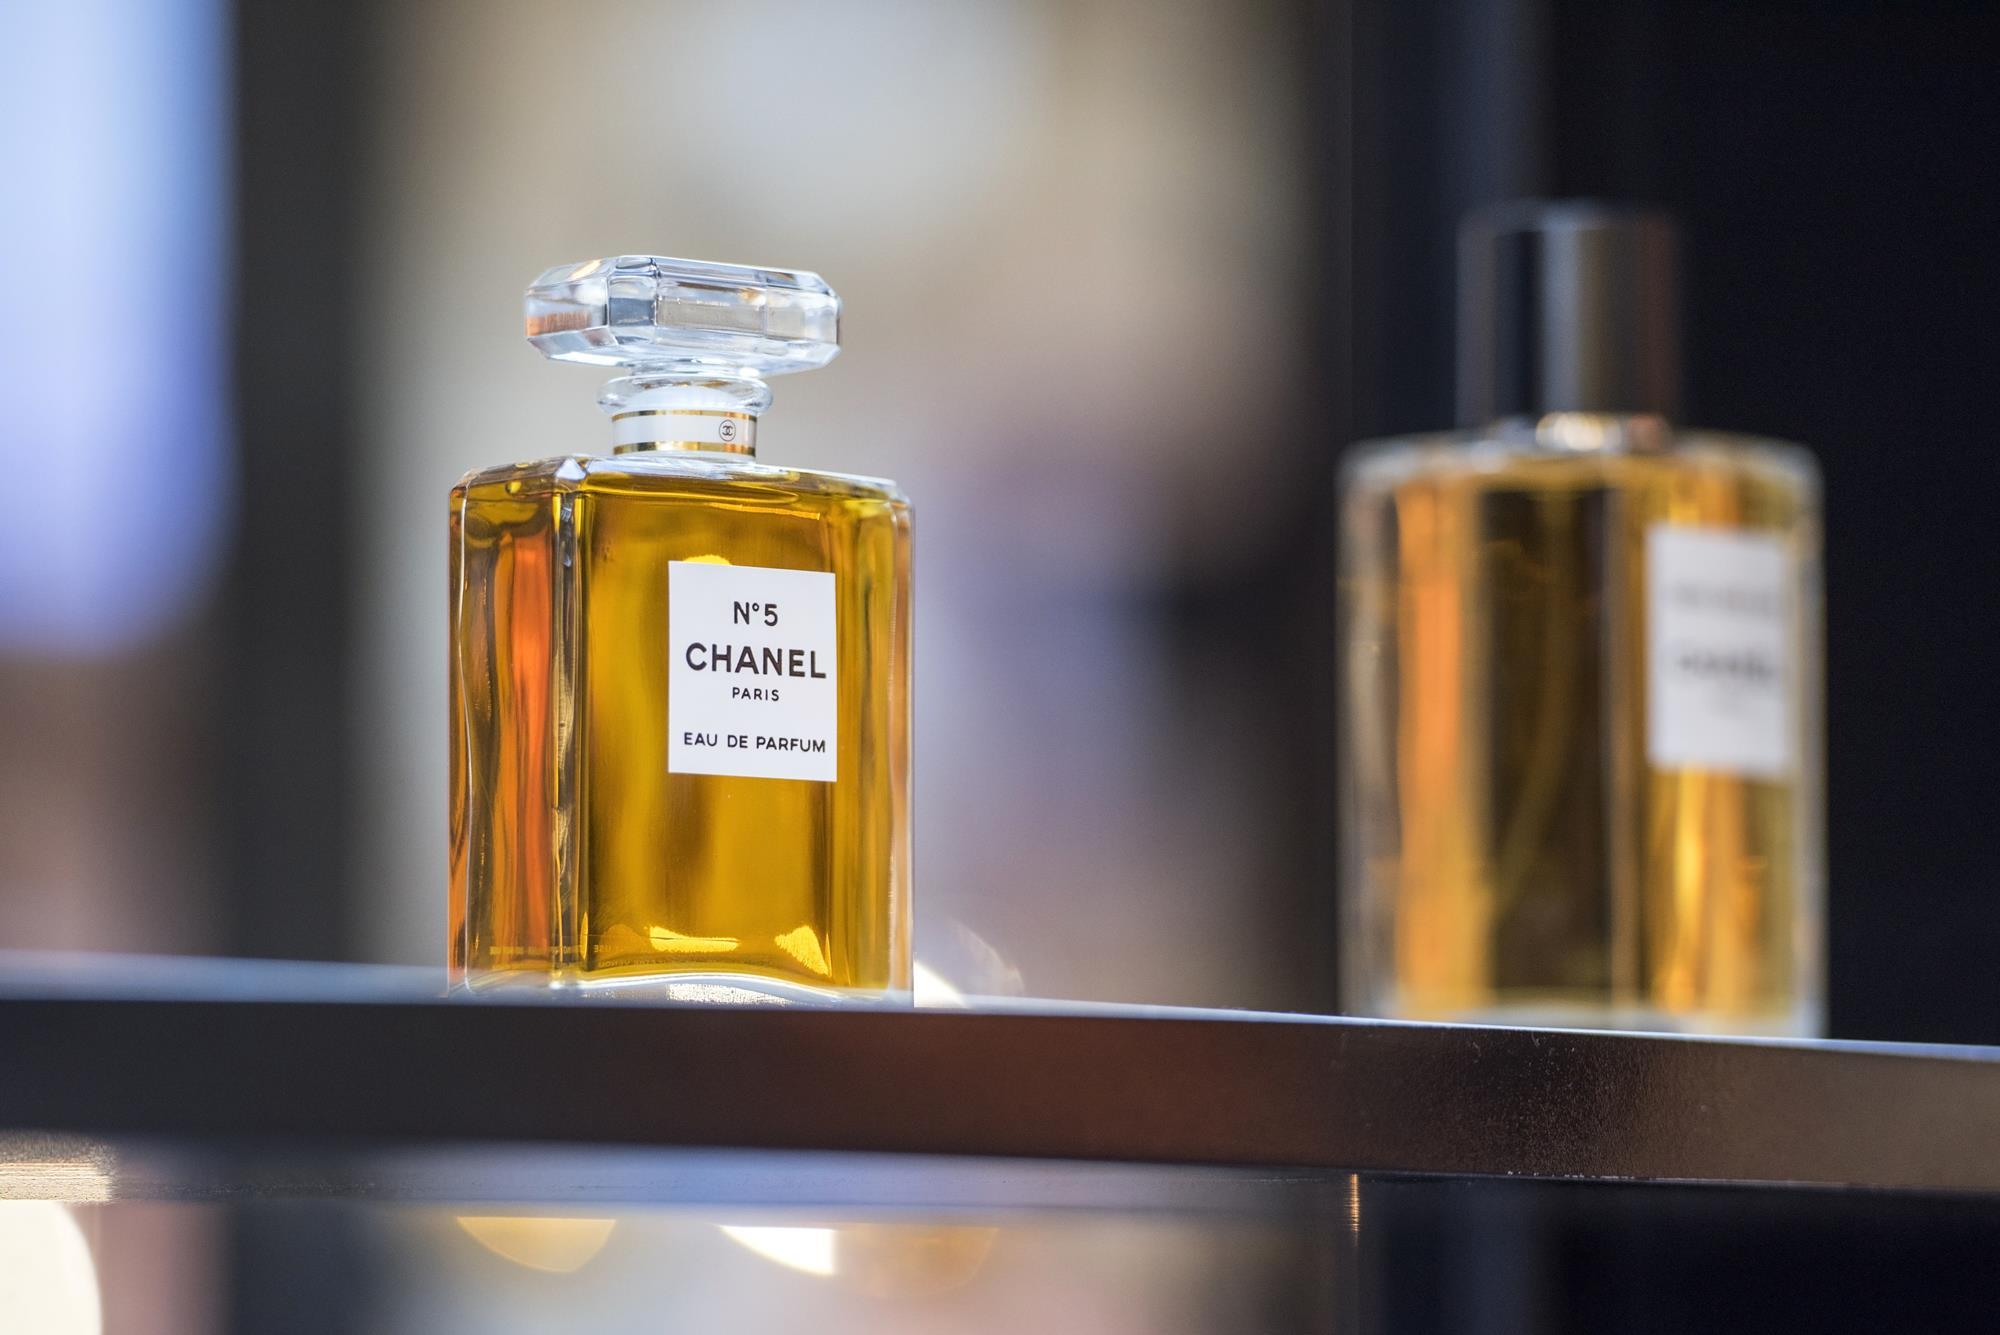 Chanel N°5 Aldehydes clean smelling perfume like soap clean shower fresh perfume what perfume smells like soap